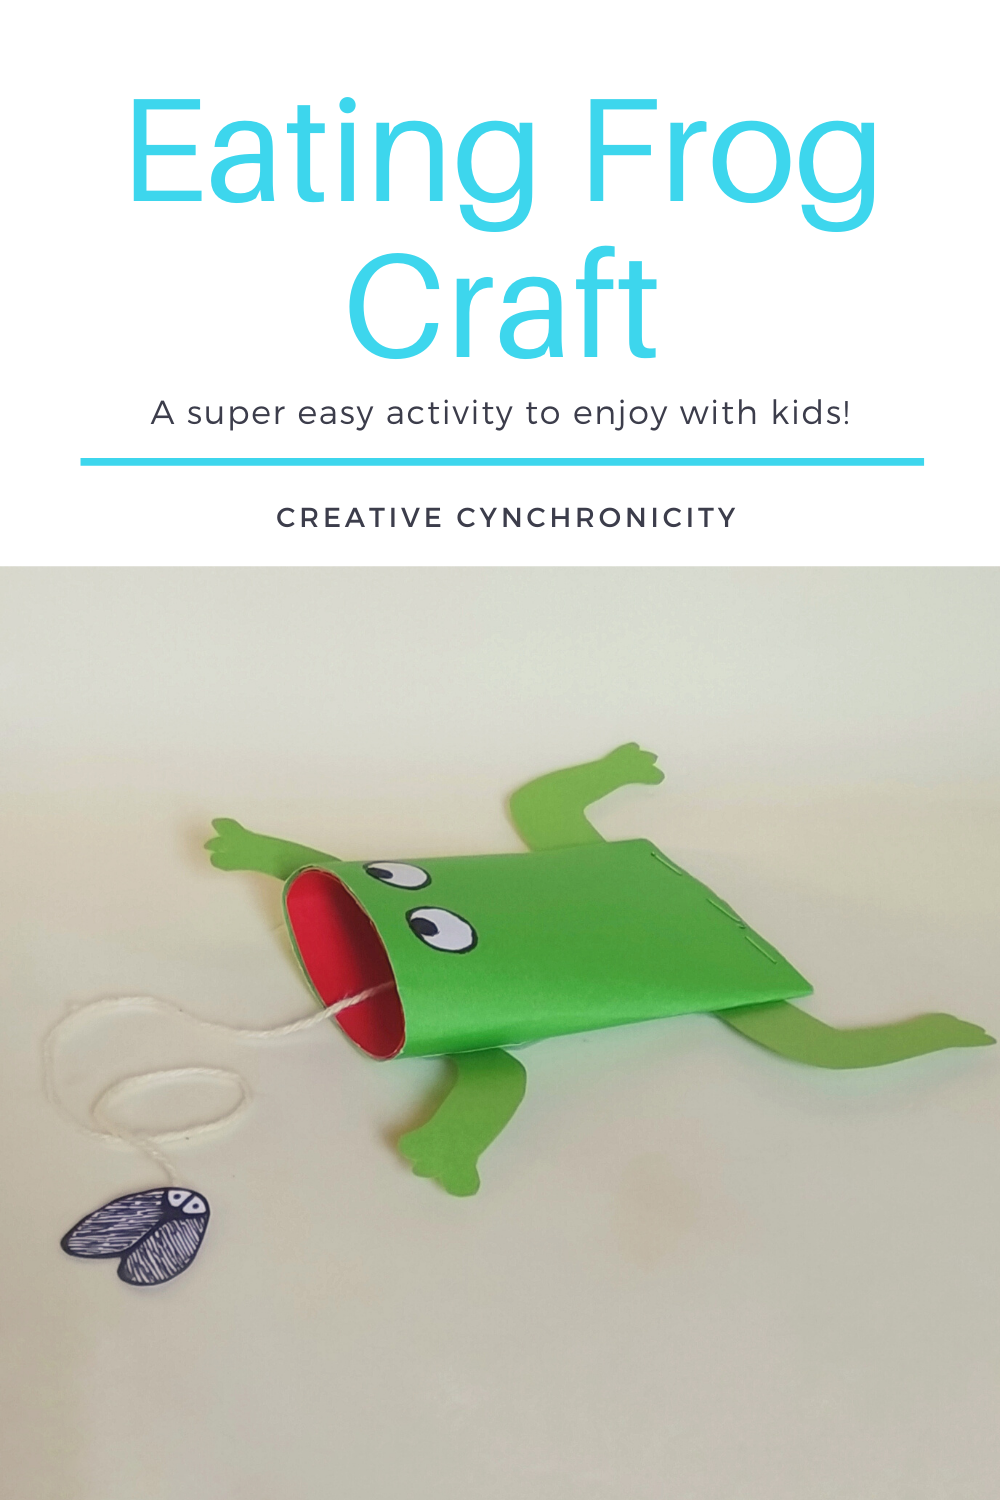 Eating Frog Craft: A super easy activity to enjoy with kids!